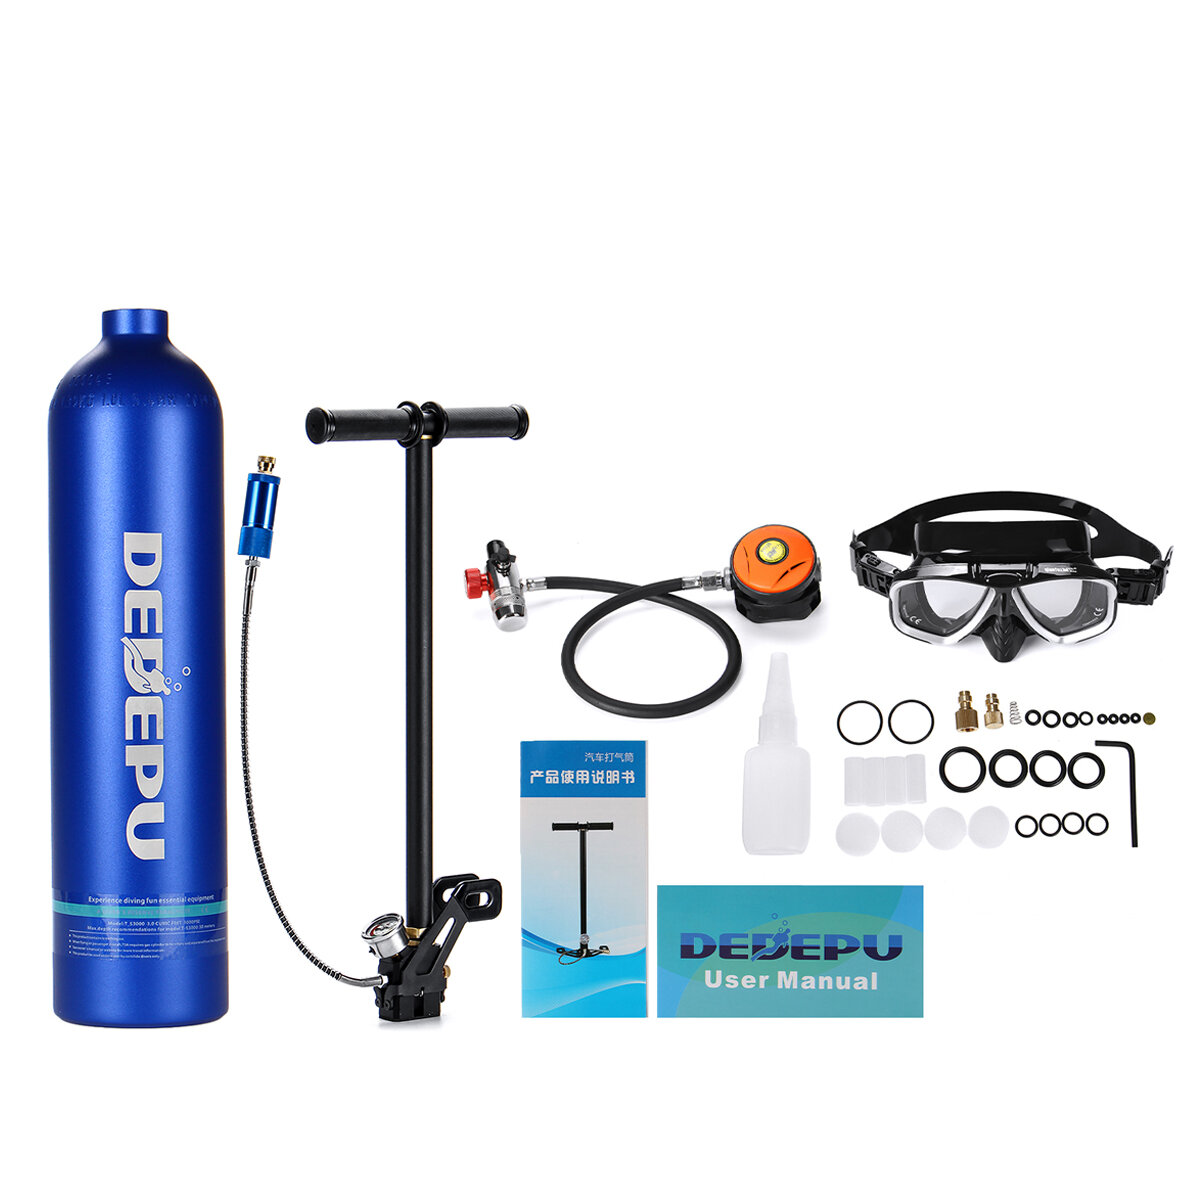 DIDEEP 1L Portable Mini Oxygen Cylinder Air Oxygen Tank Breath Diving Underwater Oxygen Cylinder фото